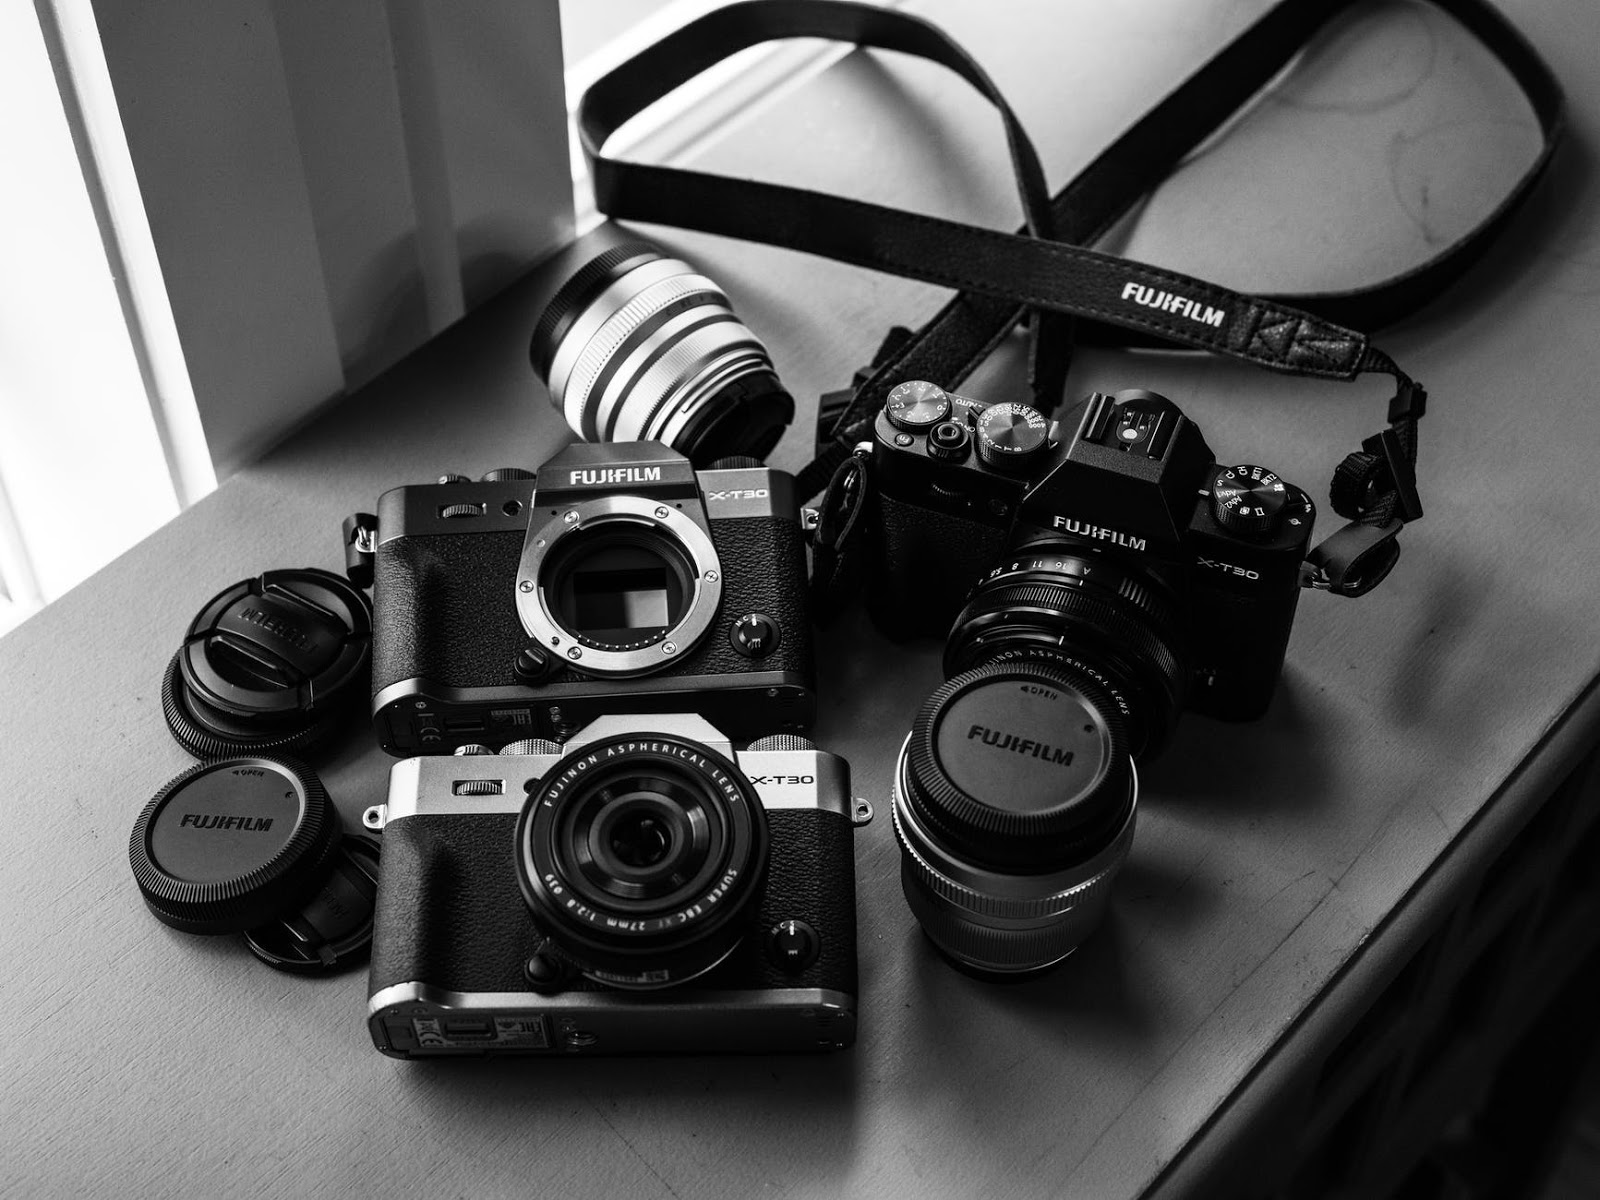 Top 5 Affordable Travel Cameras